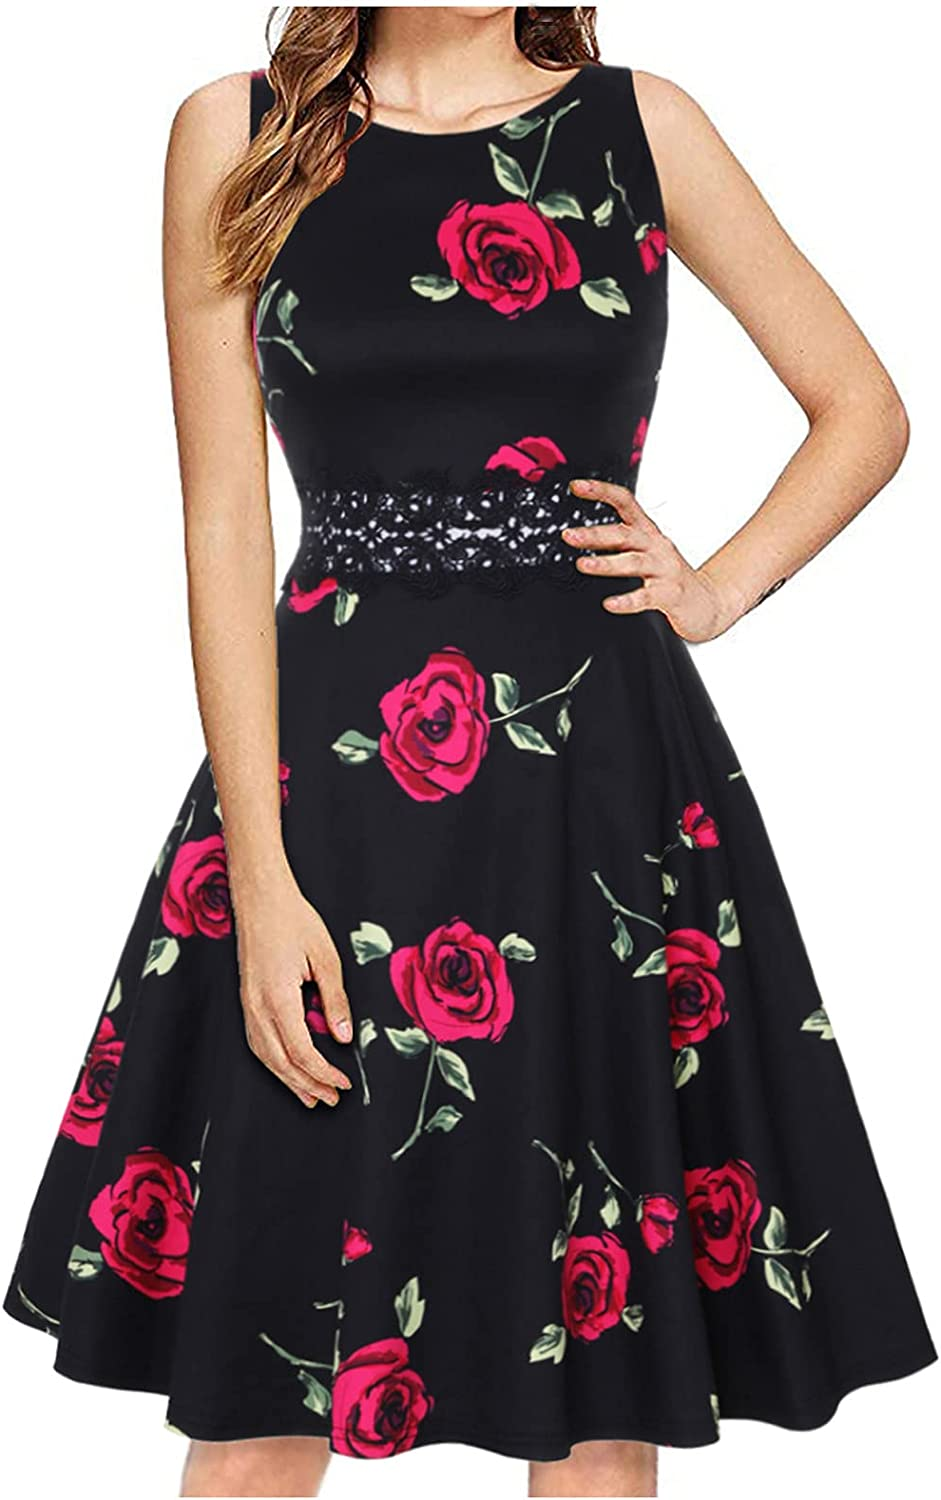 Aqestyerly Women's Summer Dresses Sleeveless Cocktail A-Line Embroidery Party Summer Wedding Guest Swing Dress